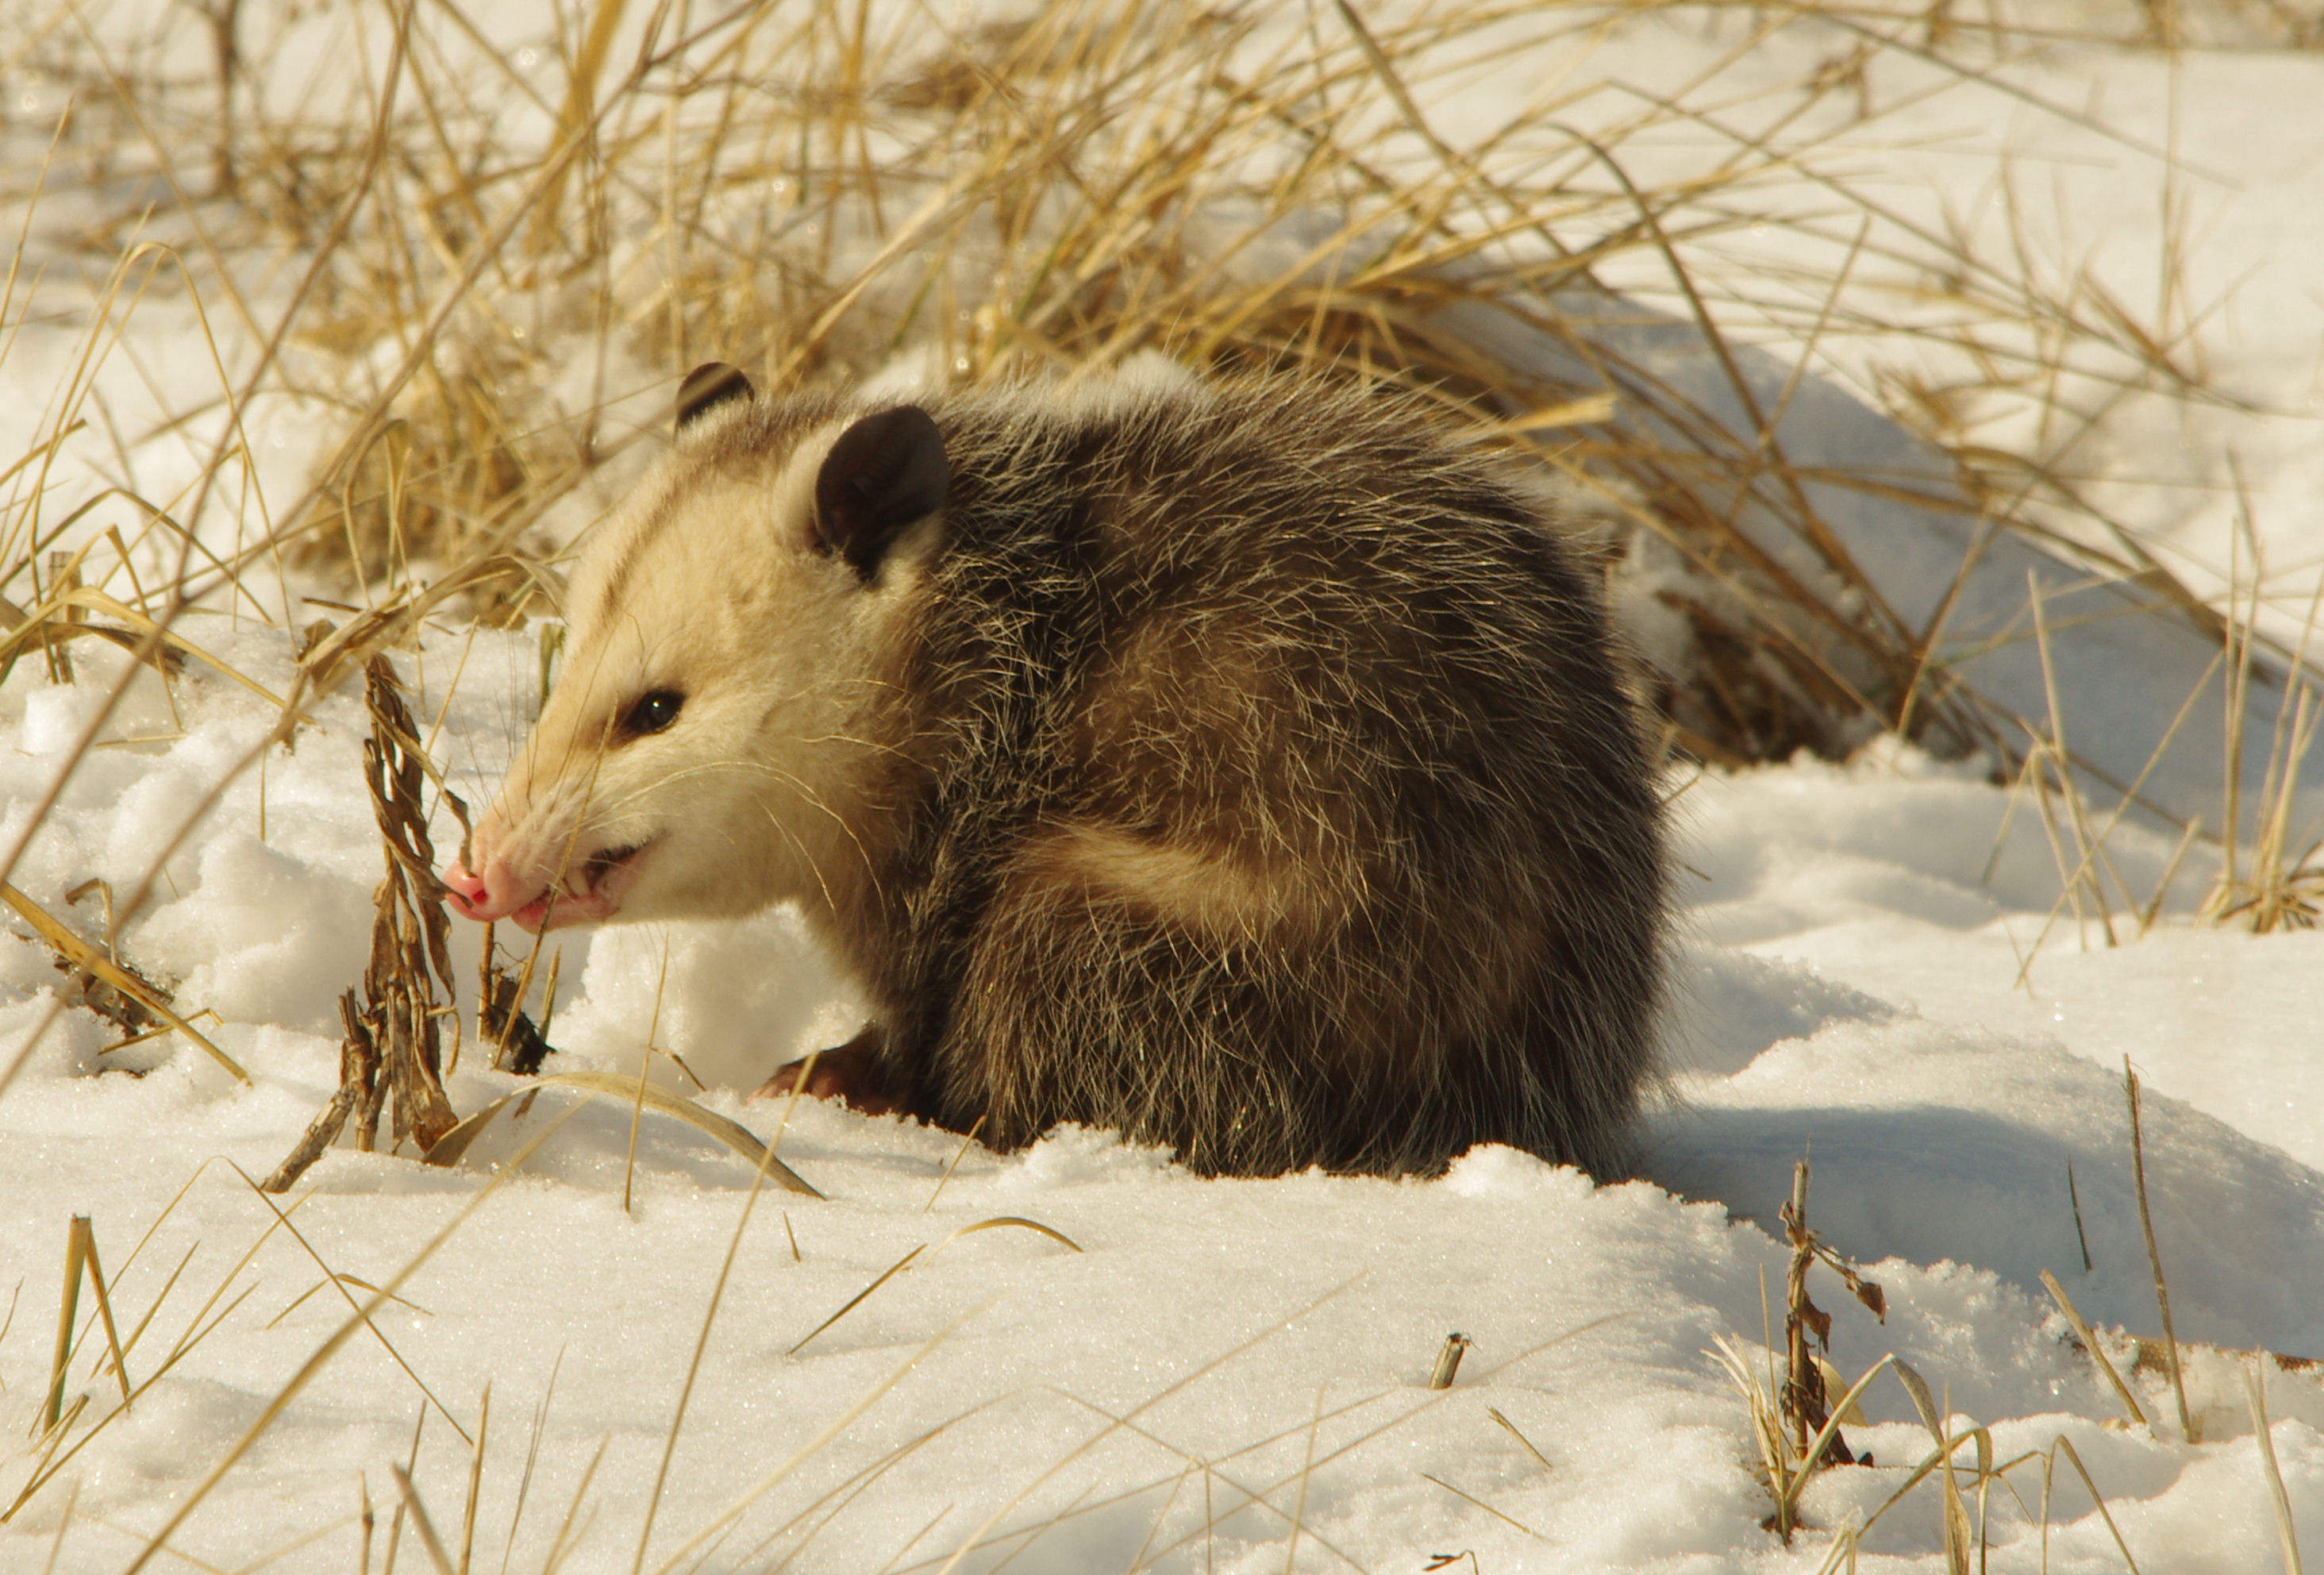 The opossum becomes discontent... Photo: Dan Johnson